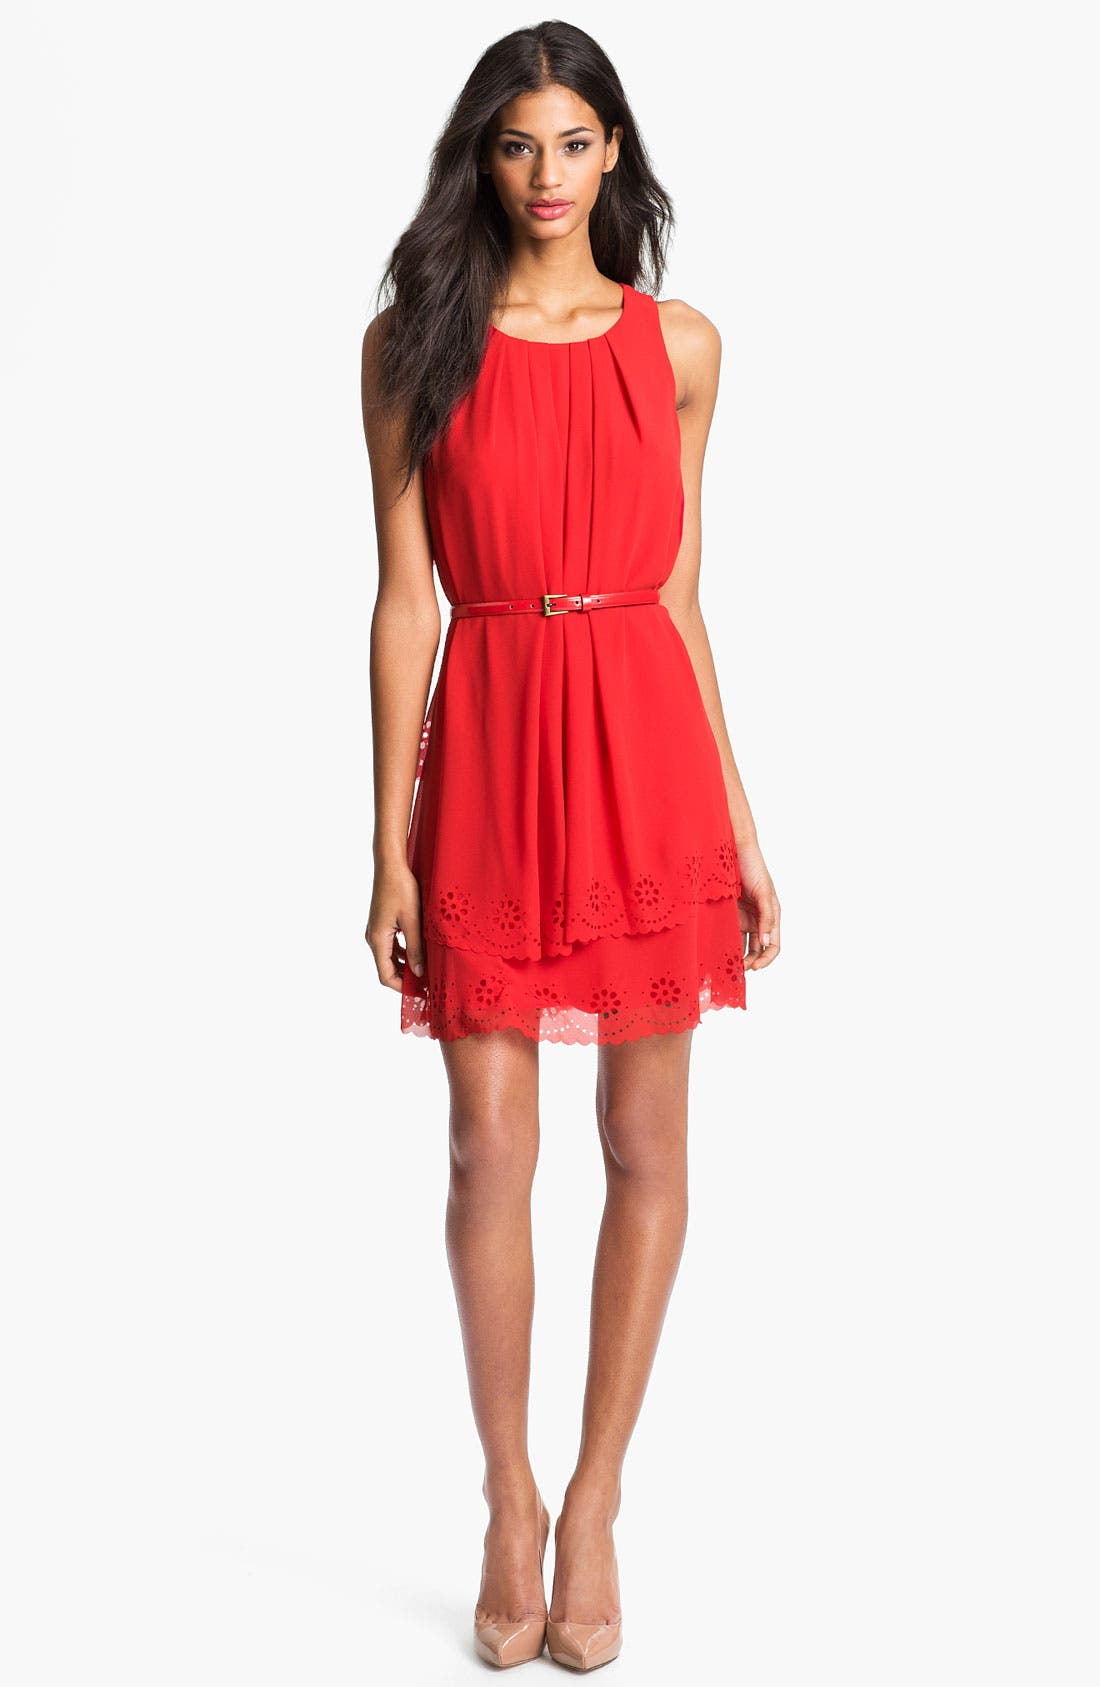 Main Image - Jessica Simpson Tiered Eyelet Crêpe de Chine Dress